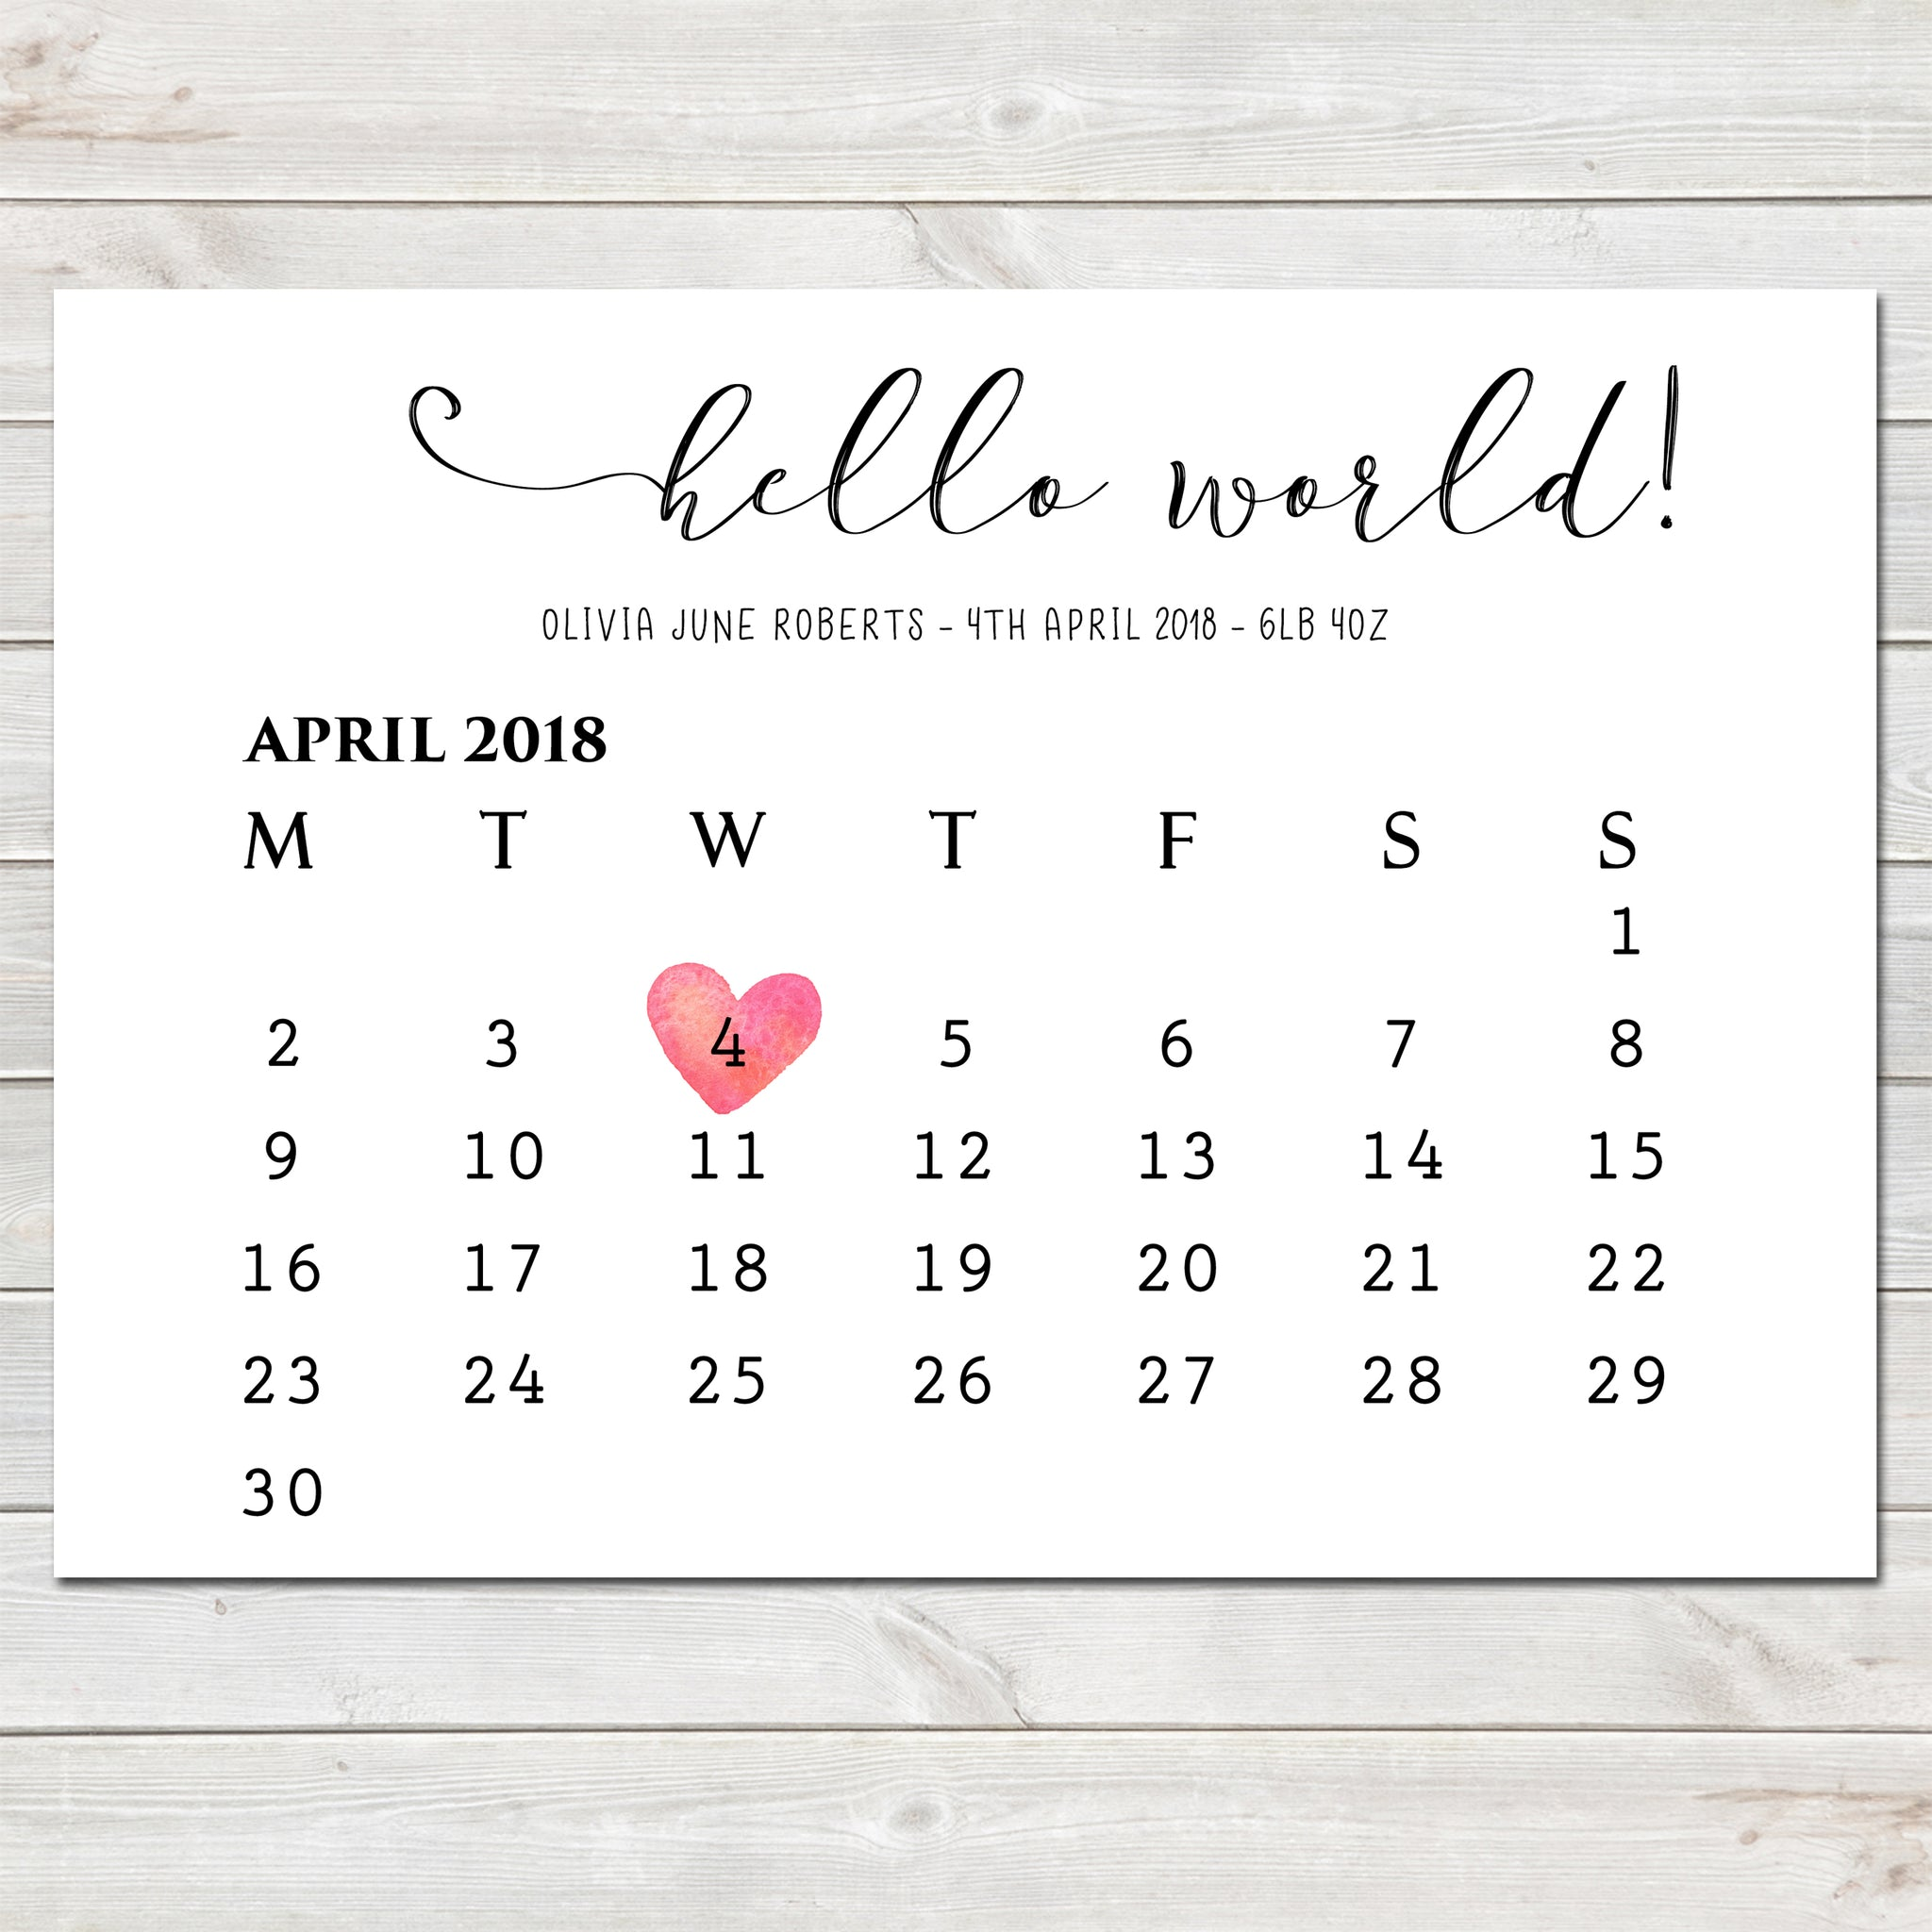 Hello World! Baby Birth Date Announcement / Nursery Bedroom Print Gift Newborn- A4